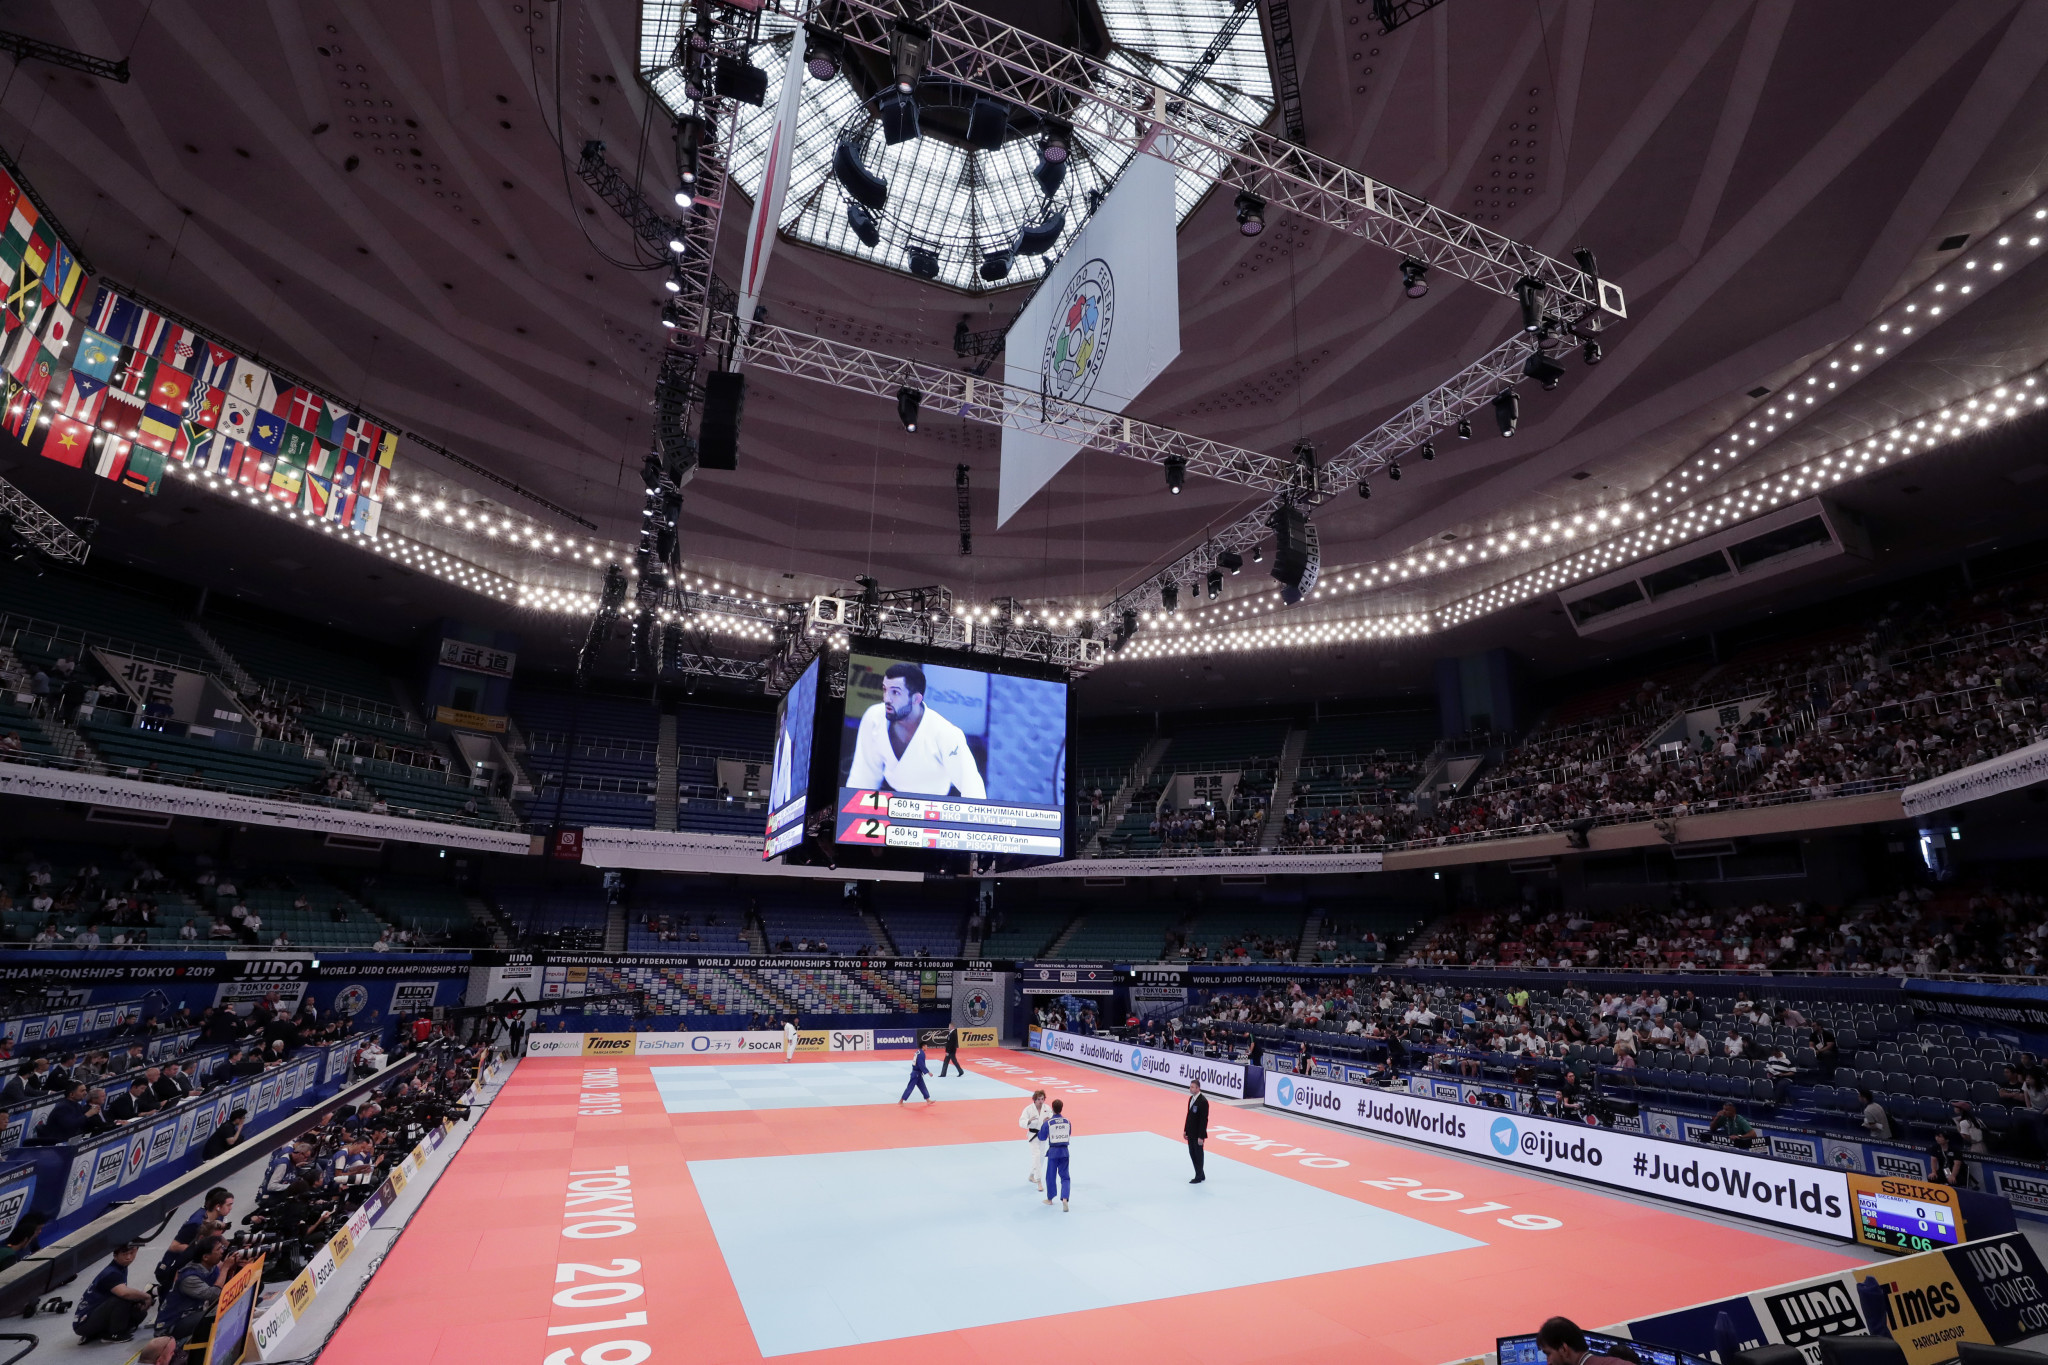 """Tokyo 2020 """"delighted"""" with IJF World Championships which doubled as judo test event"""